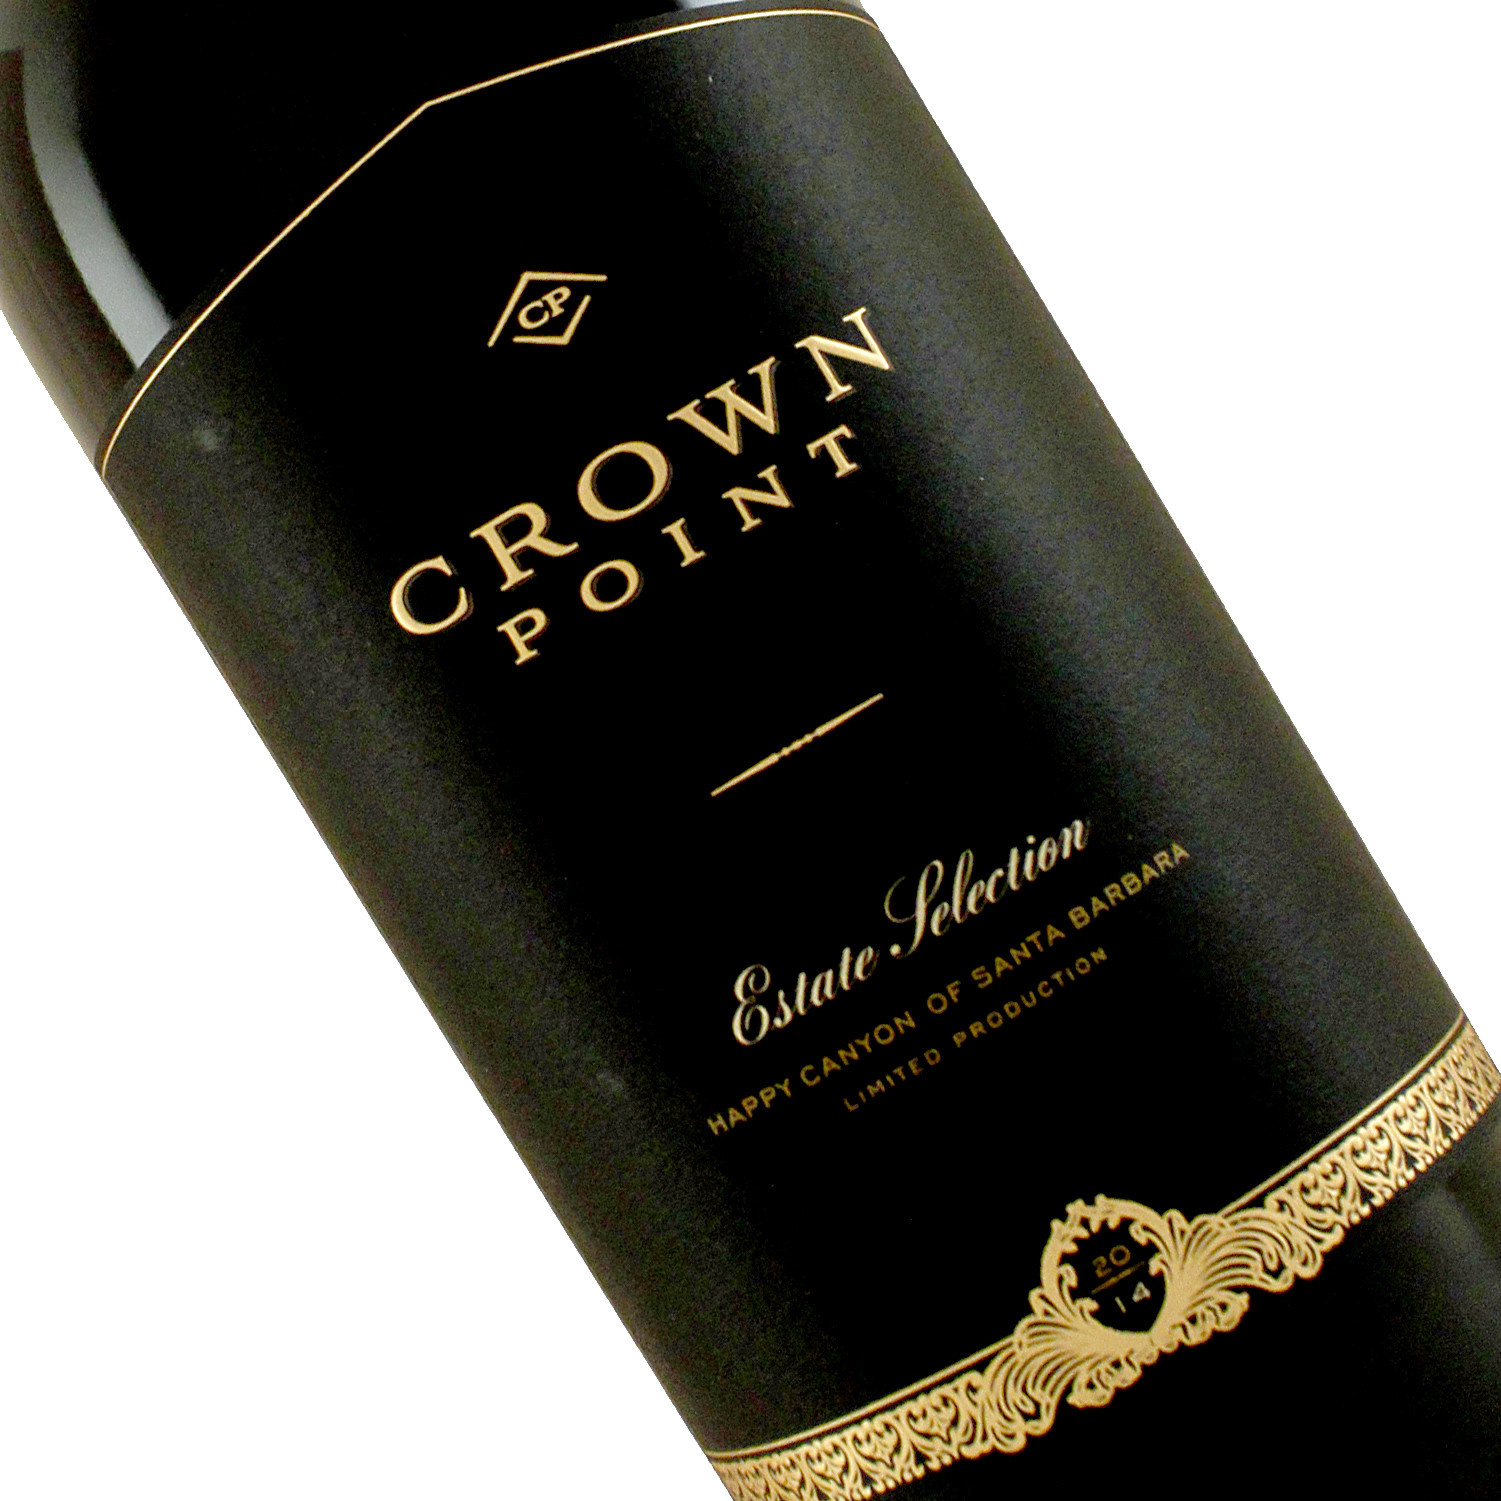 Crown Point 2016 Estate Selection Red Blend, Happy Canyon of Santa Barbara